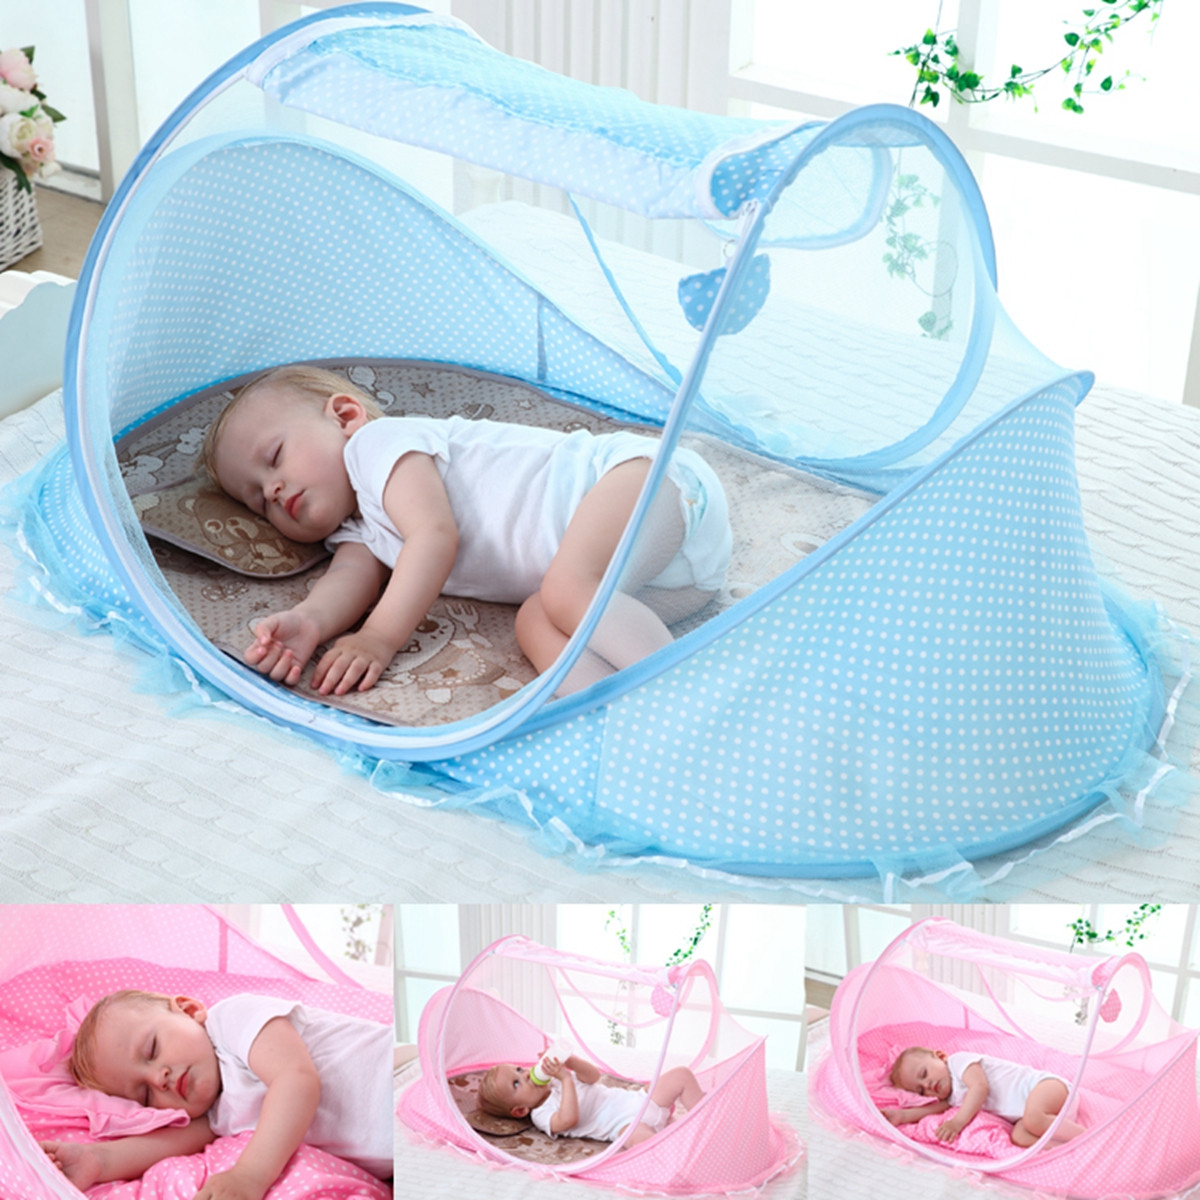 On Clearance Baby Infant Portable Folding Travel Bed, Crib Canopy Mosquito Net Tent, Portable Baby Cots Crib Sleeper Bed with One Pillow